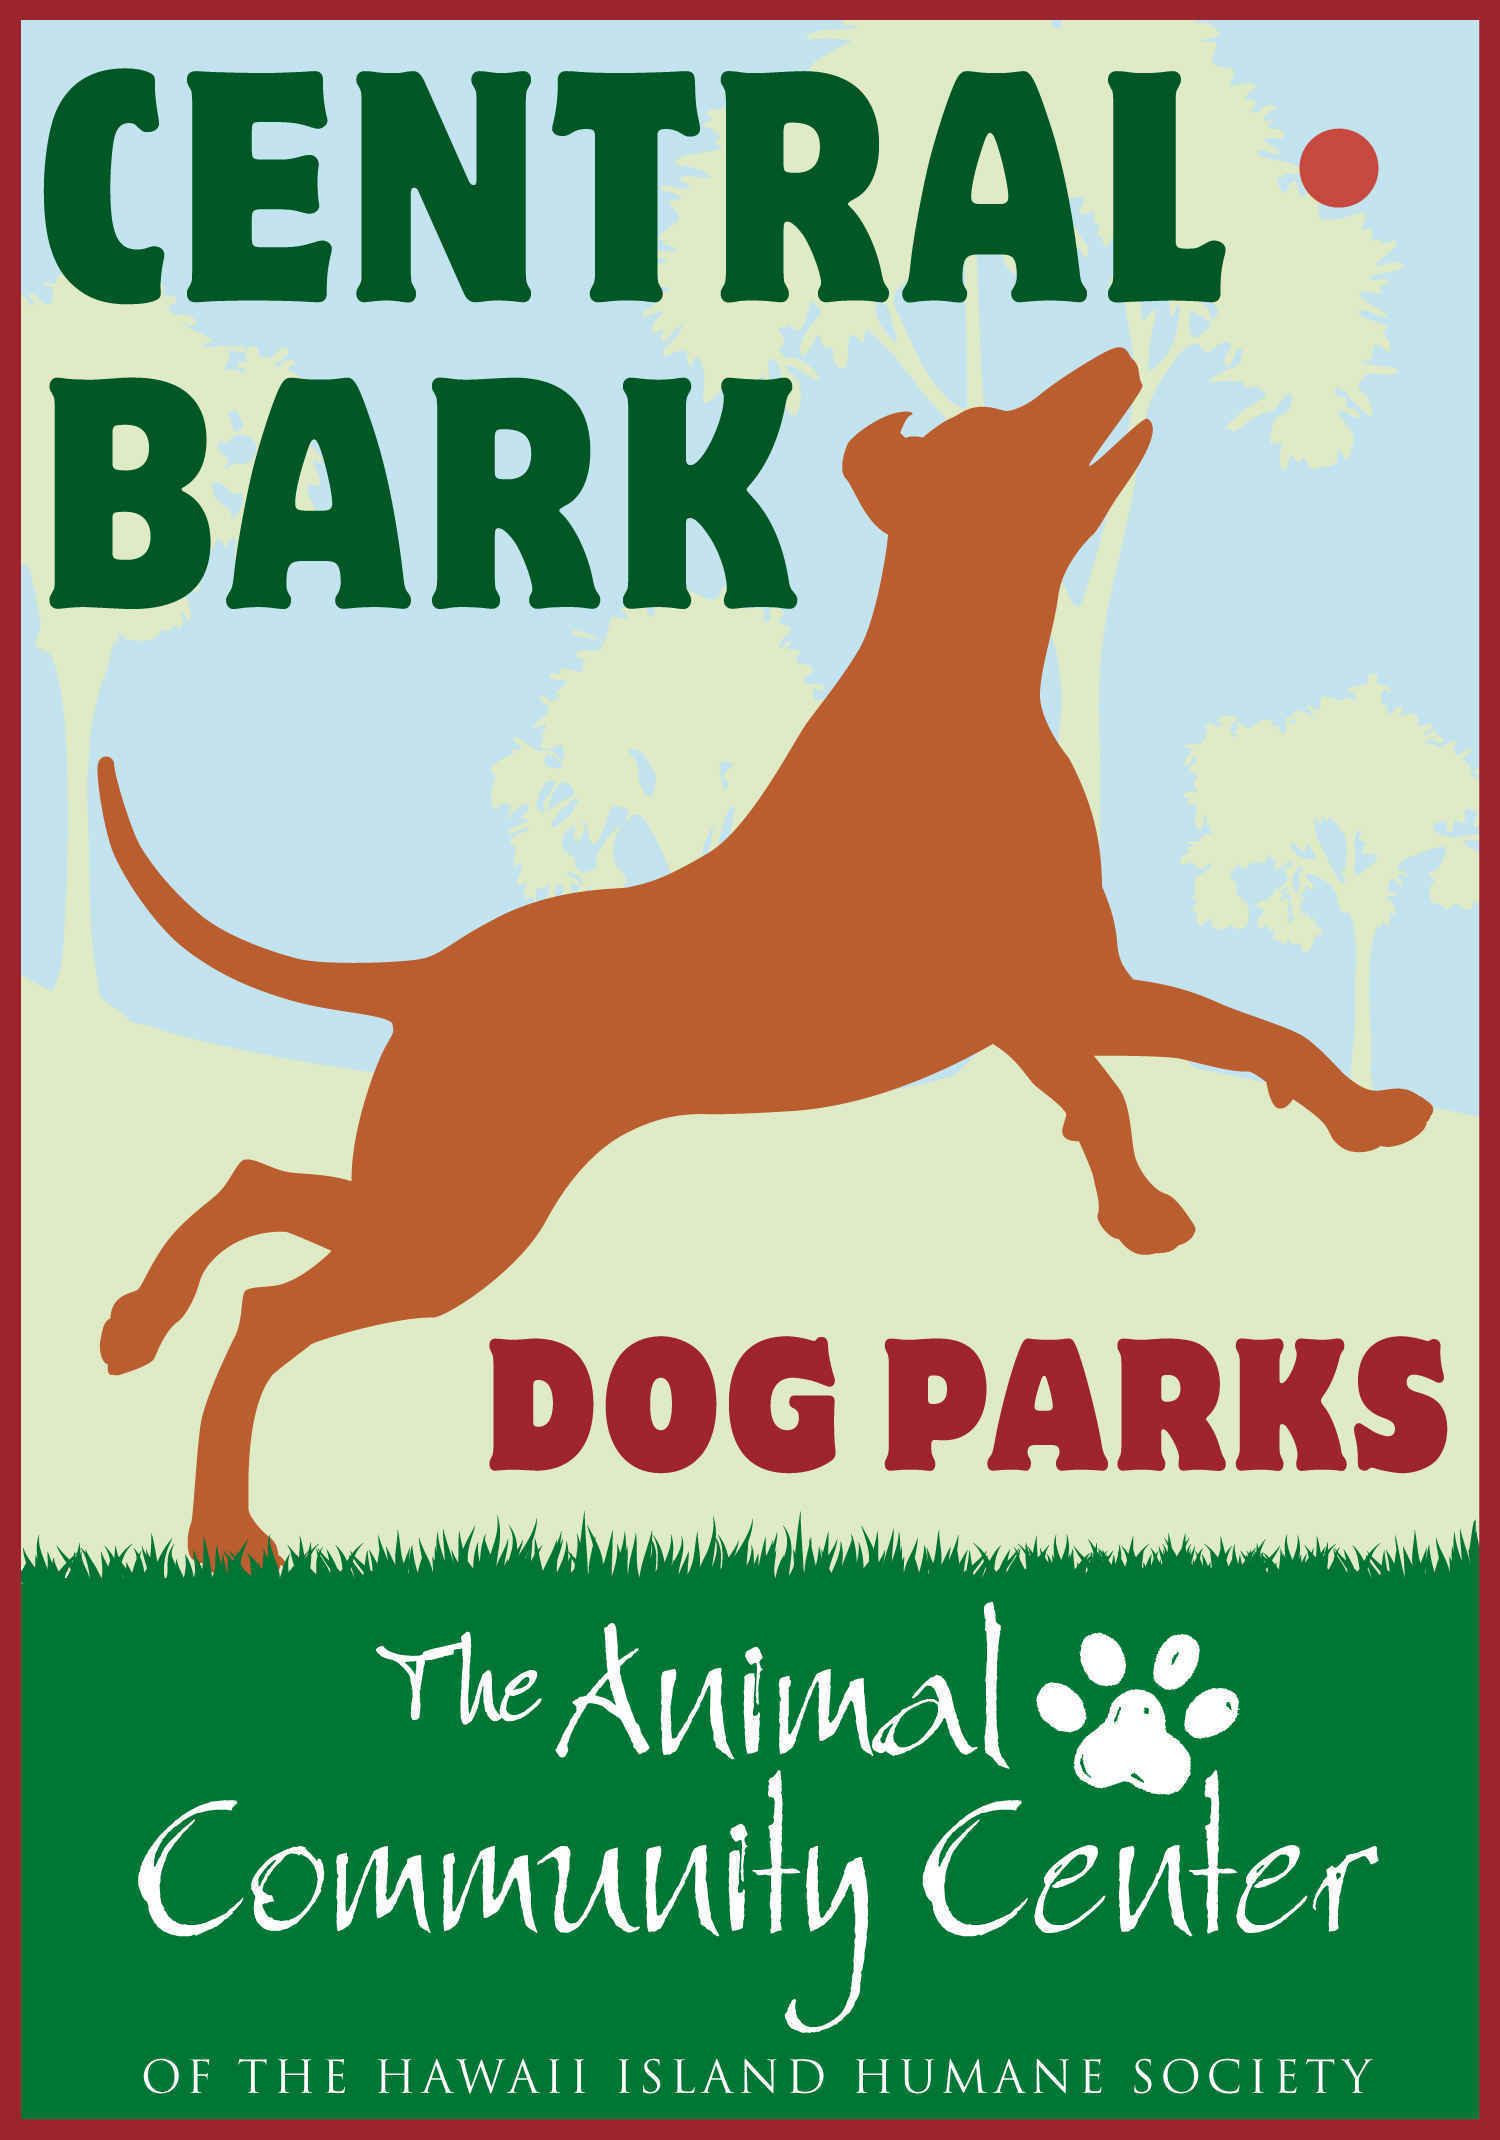 Support Central Bark Dog Parks image